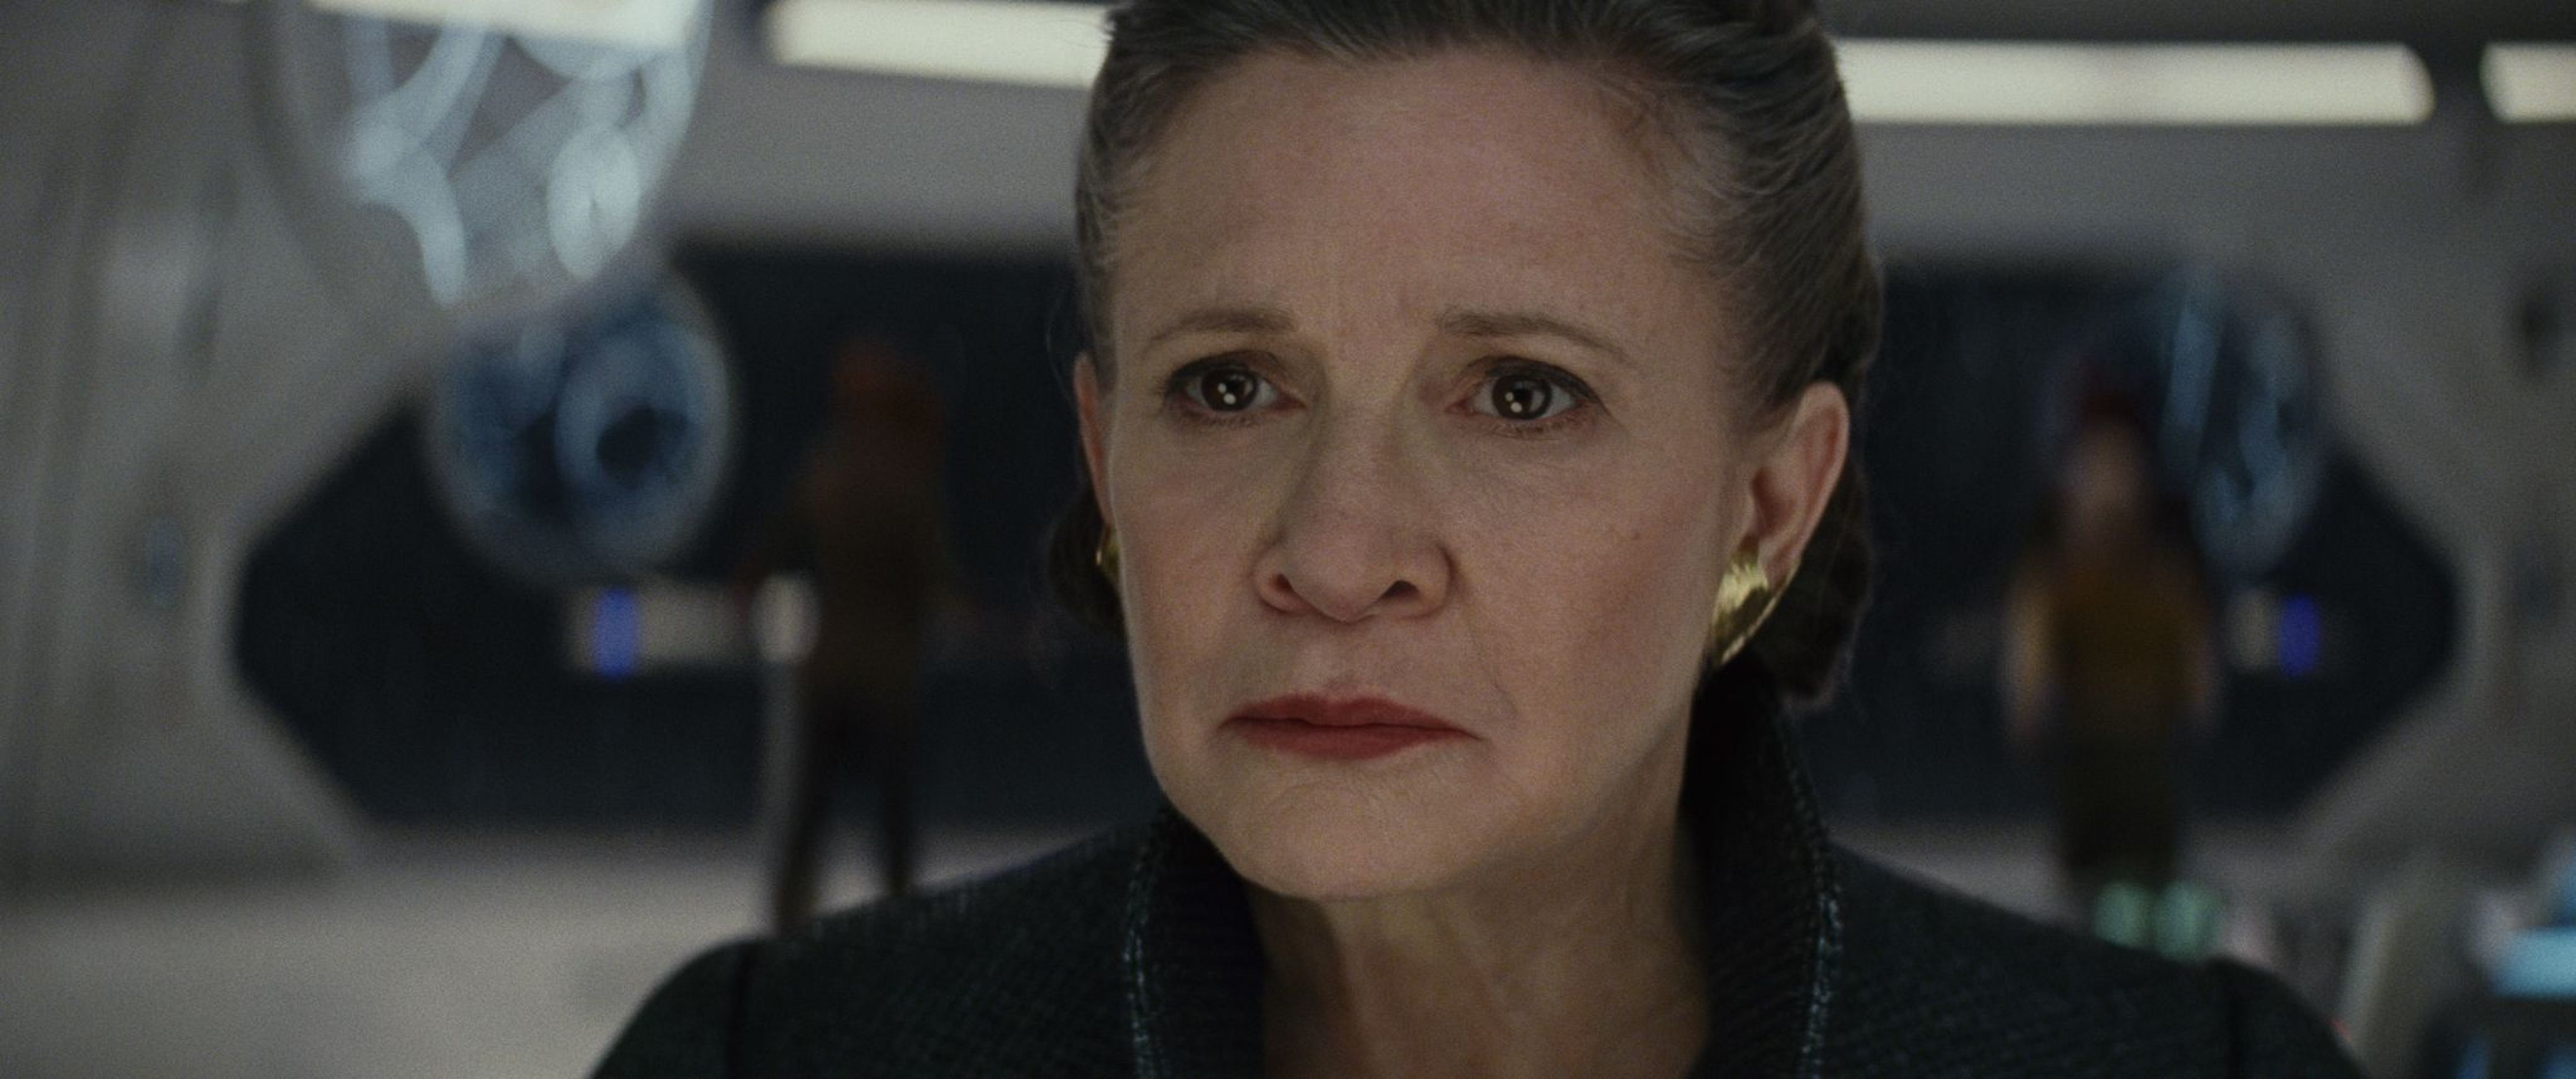 'Star Wars 9' To Feature Carrie Fisher Thanks To Previously Unseen